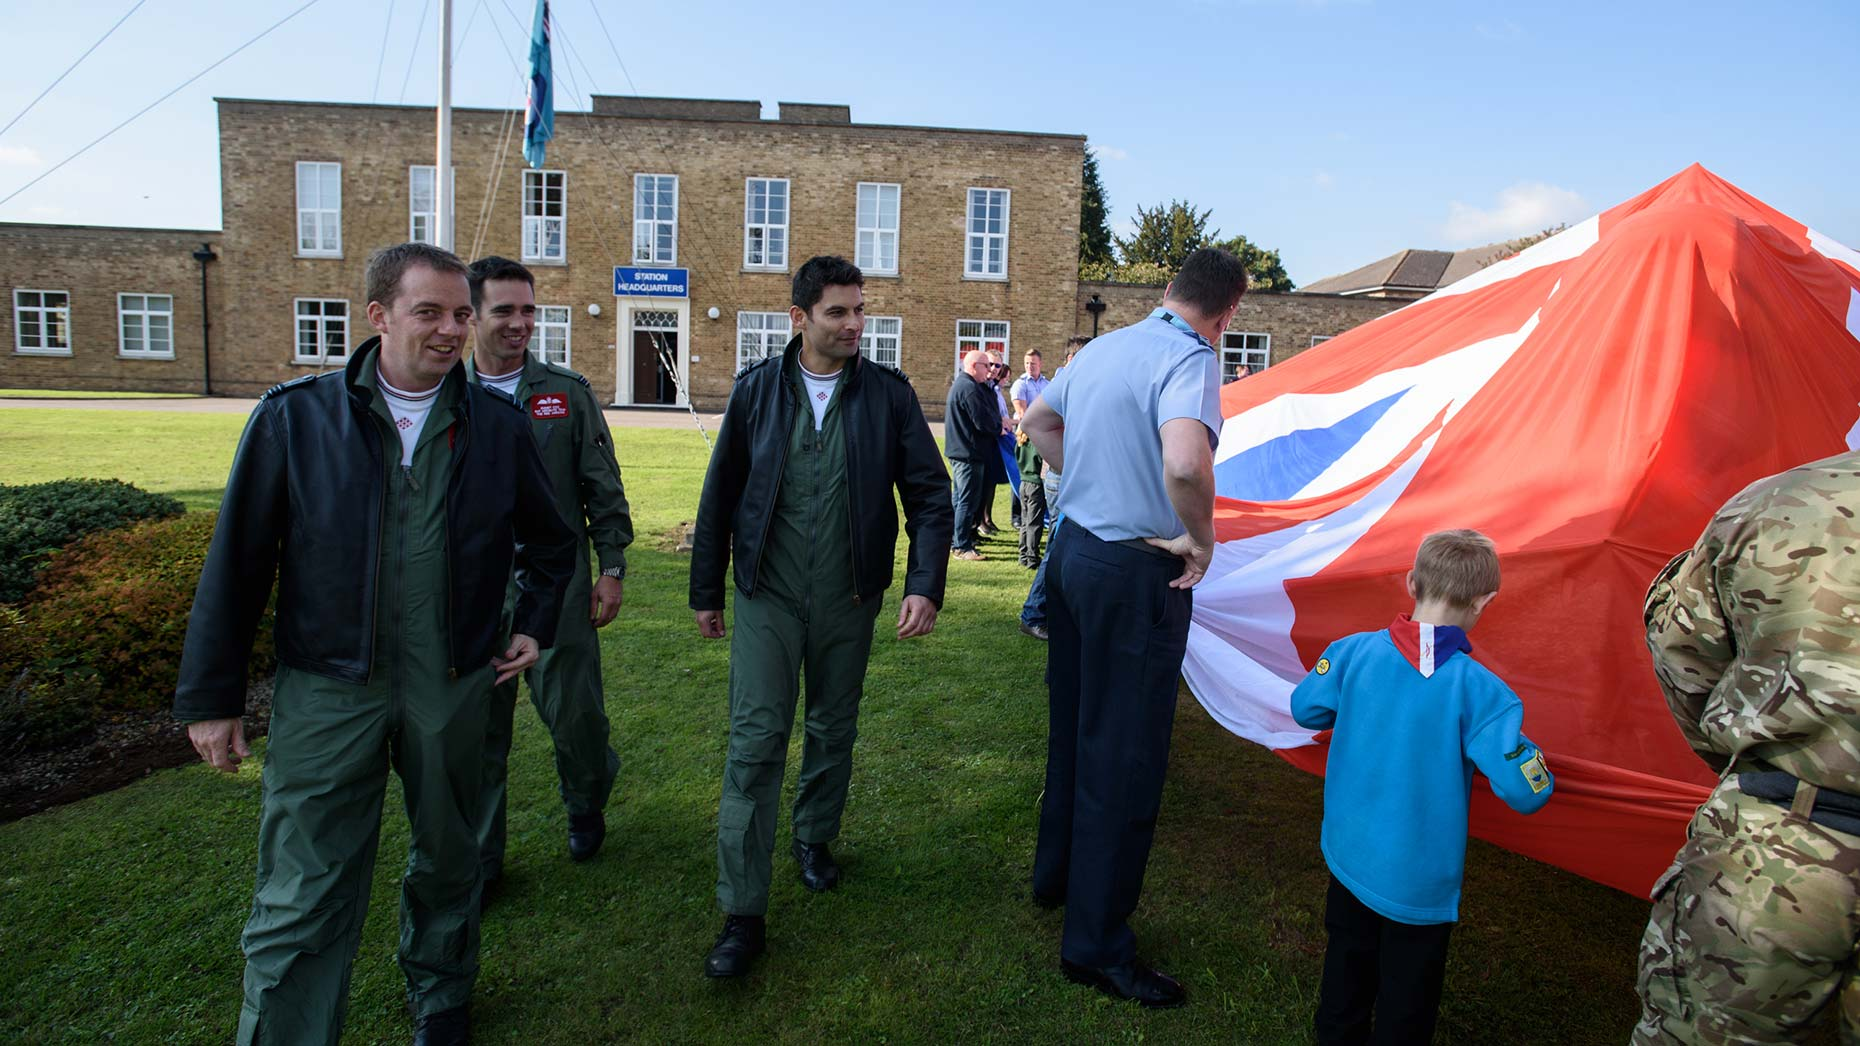 Red Arrows pilots joined the guests at the unveiling. Photo: Steve Smailes for The Lincolnite